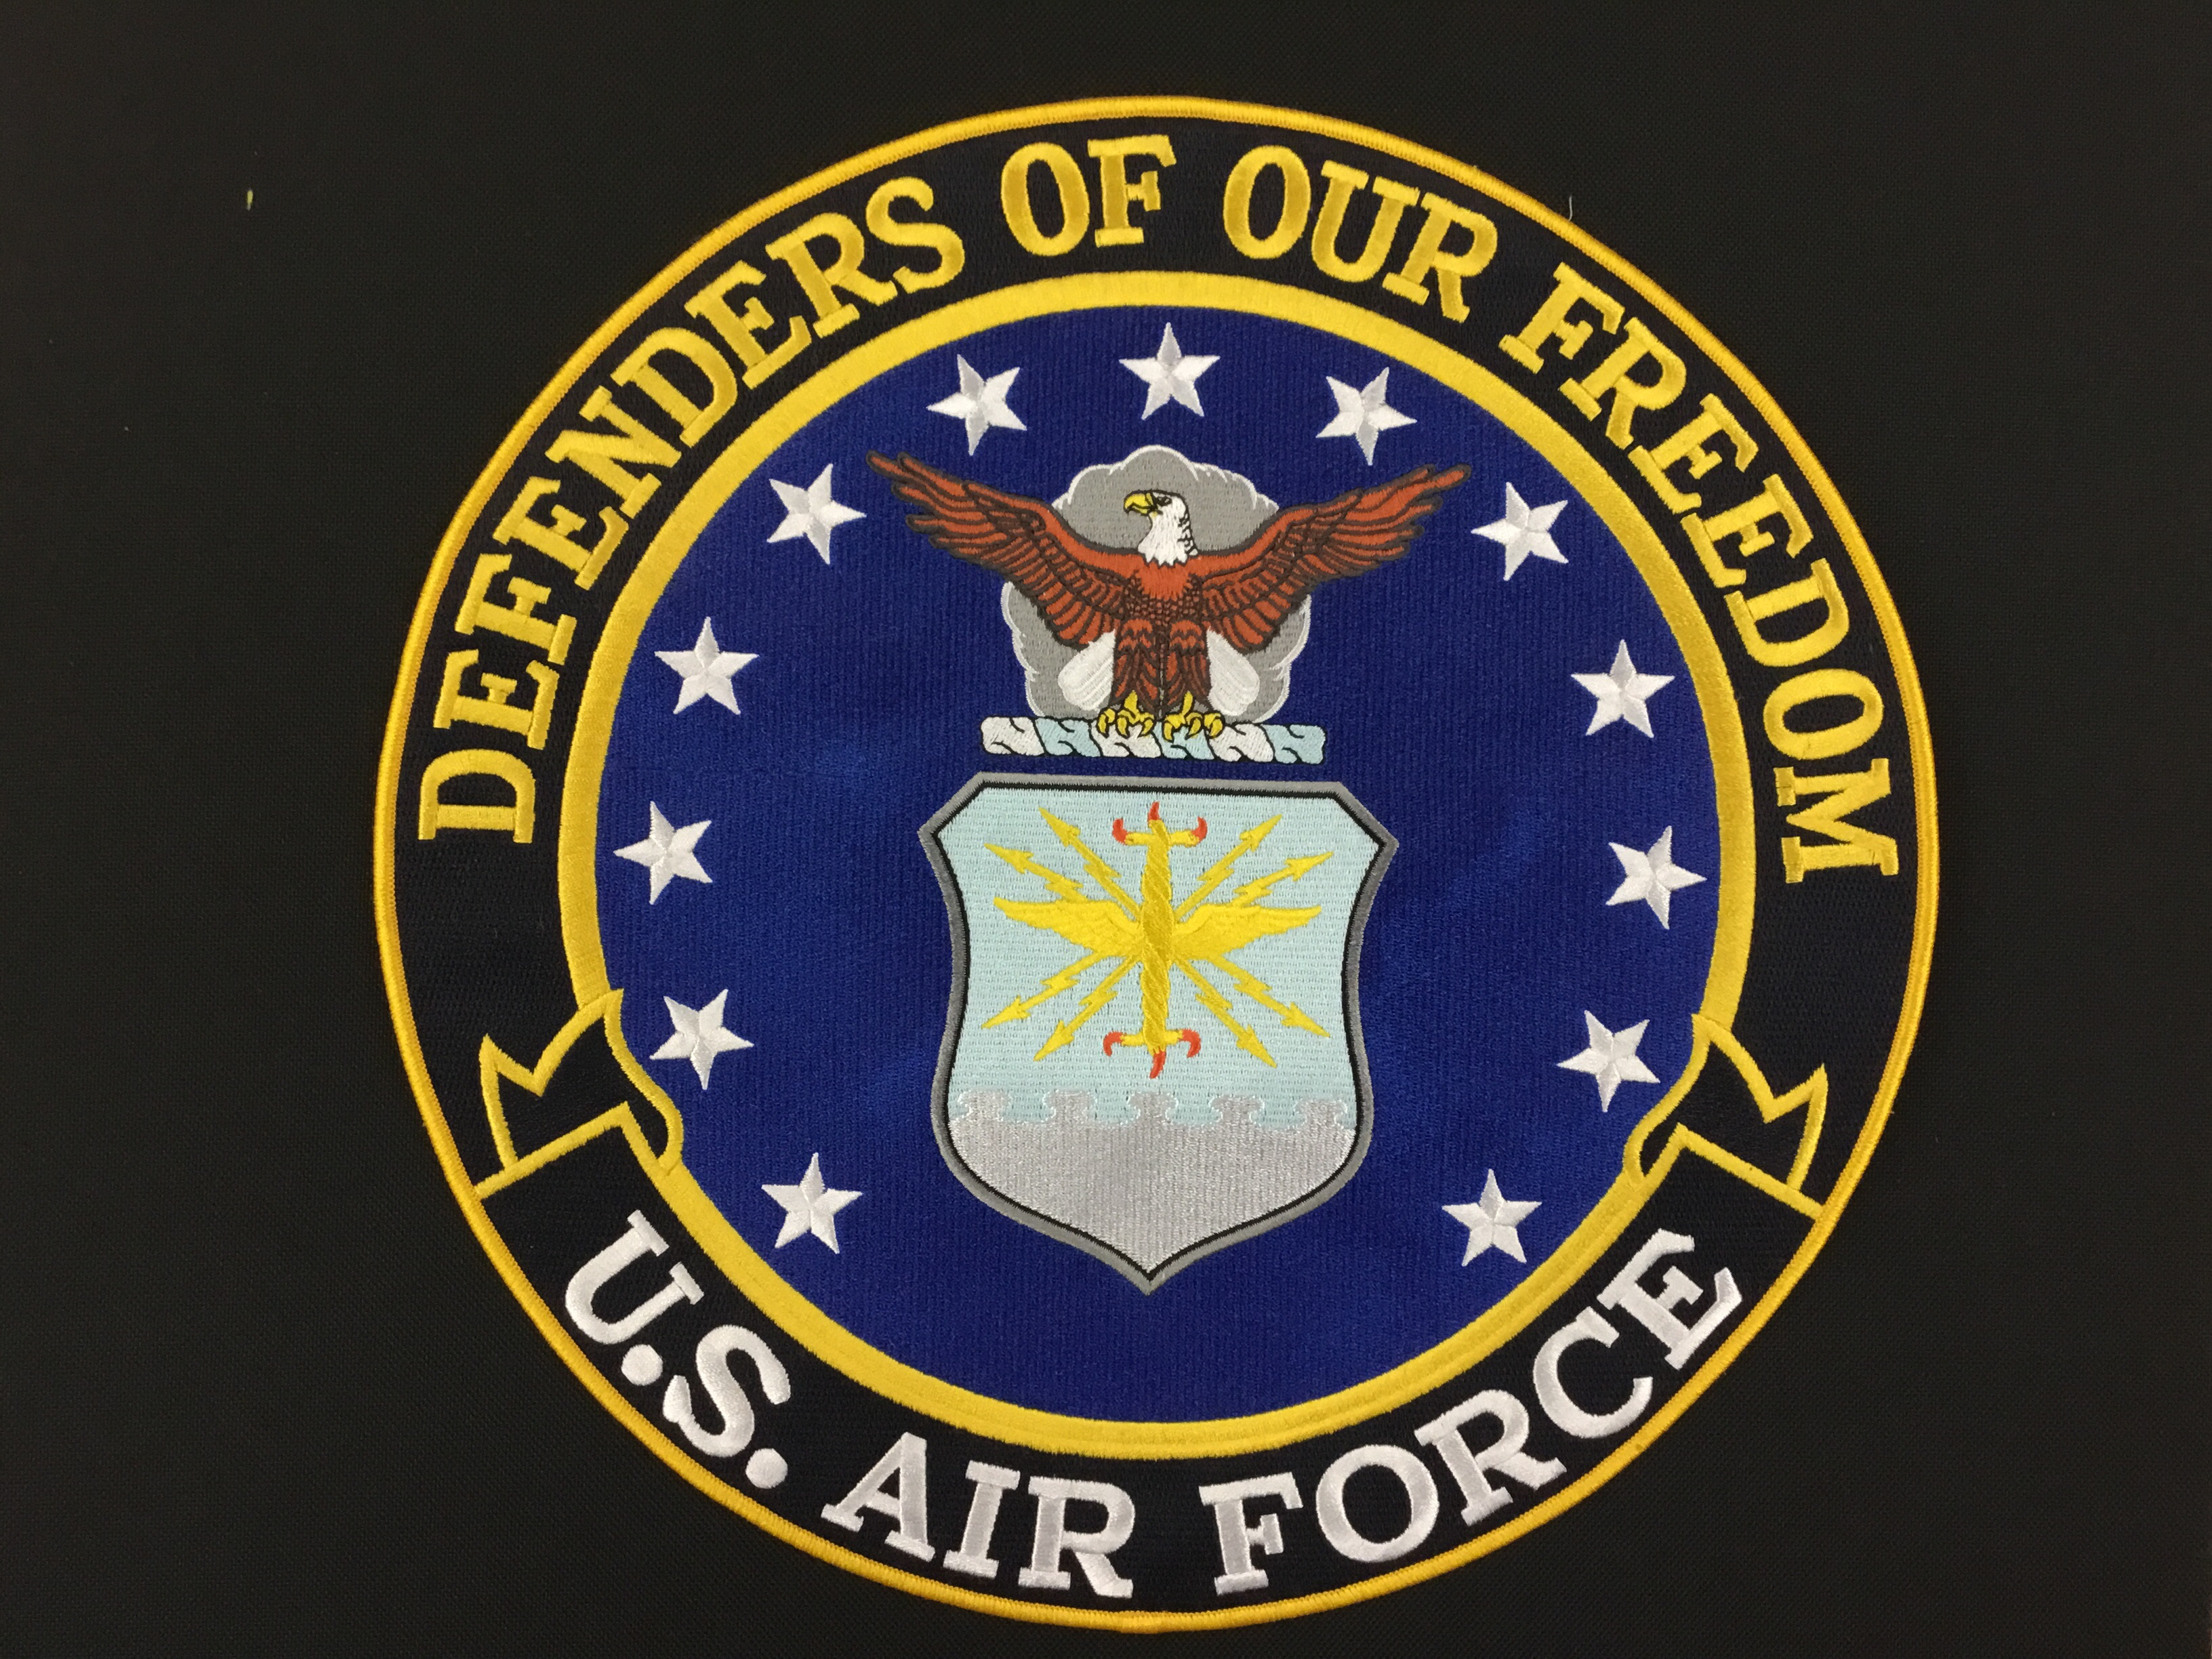 LG MILITARY PATCH AIR FORCE DEFENDERS